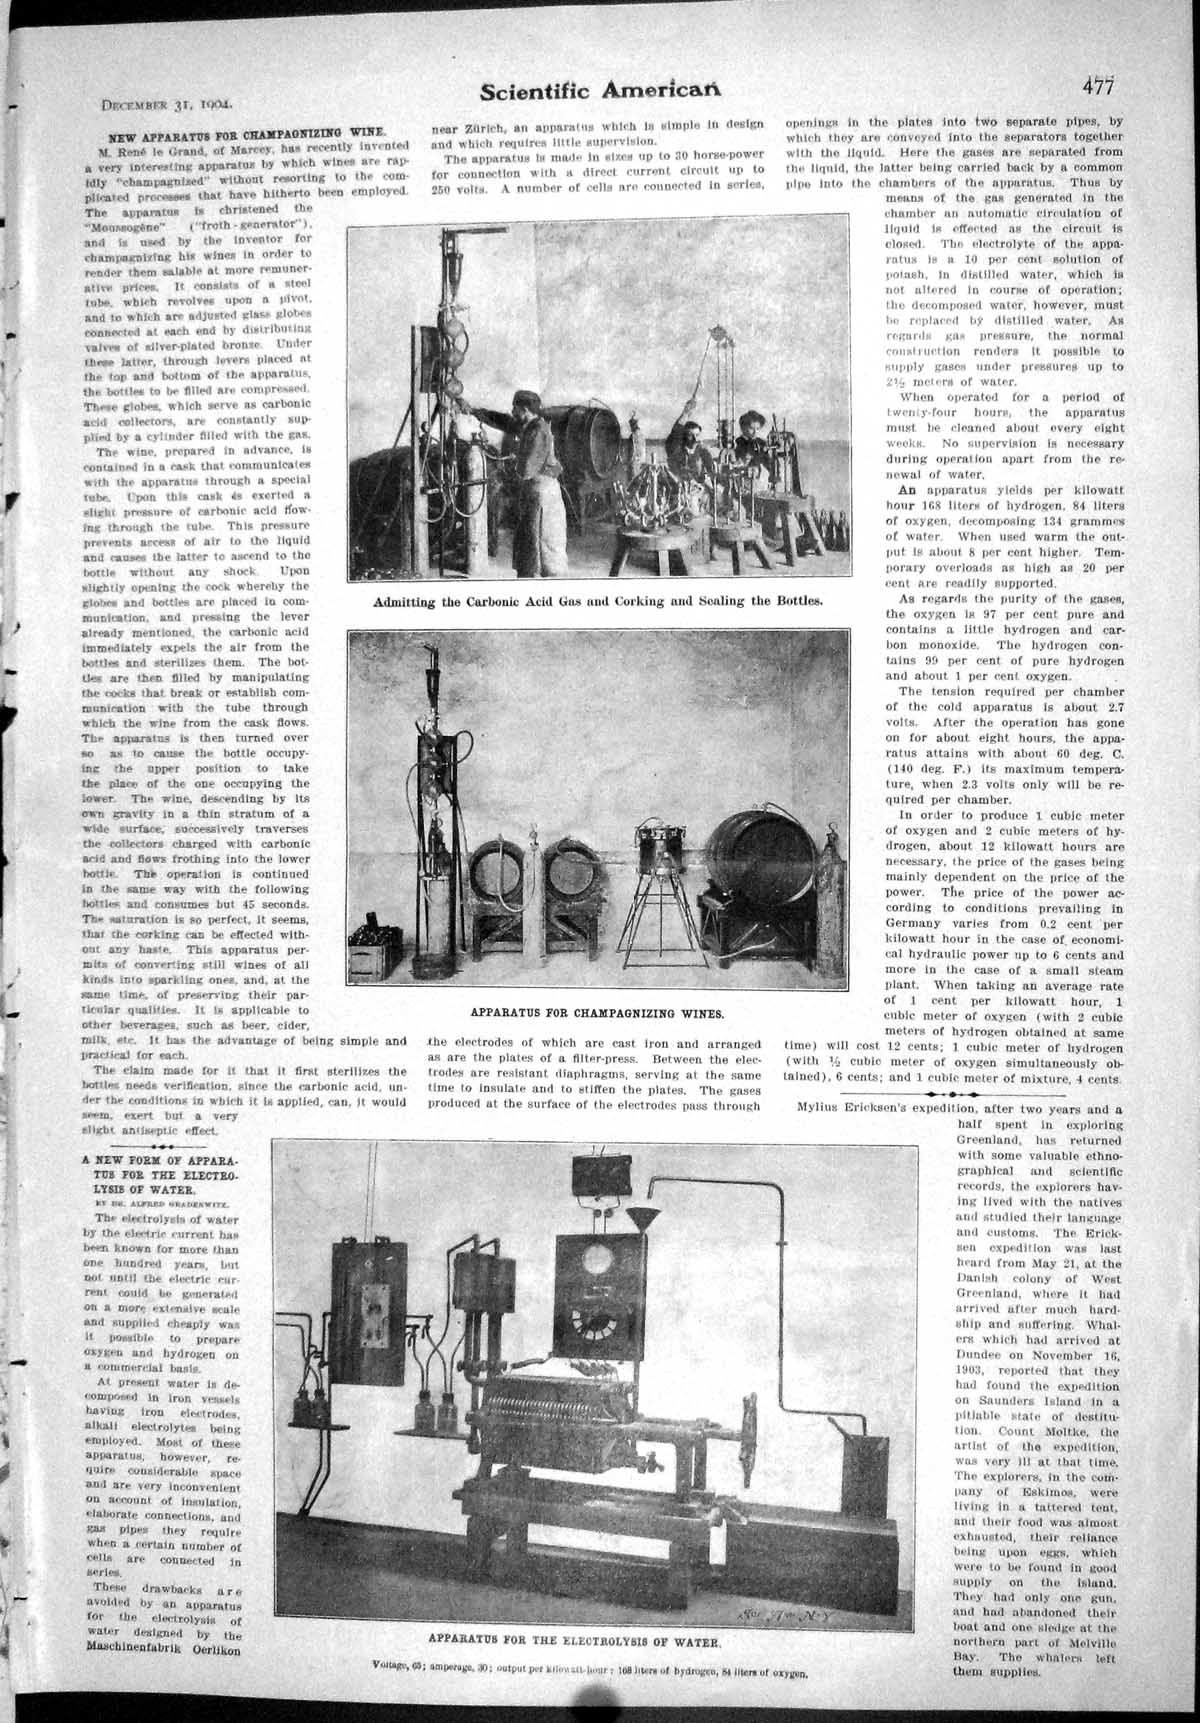 [Scientific American 1904 Apparatus Champagnizing Wines Electrolys 477J091 ]